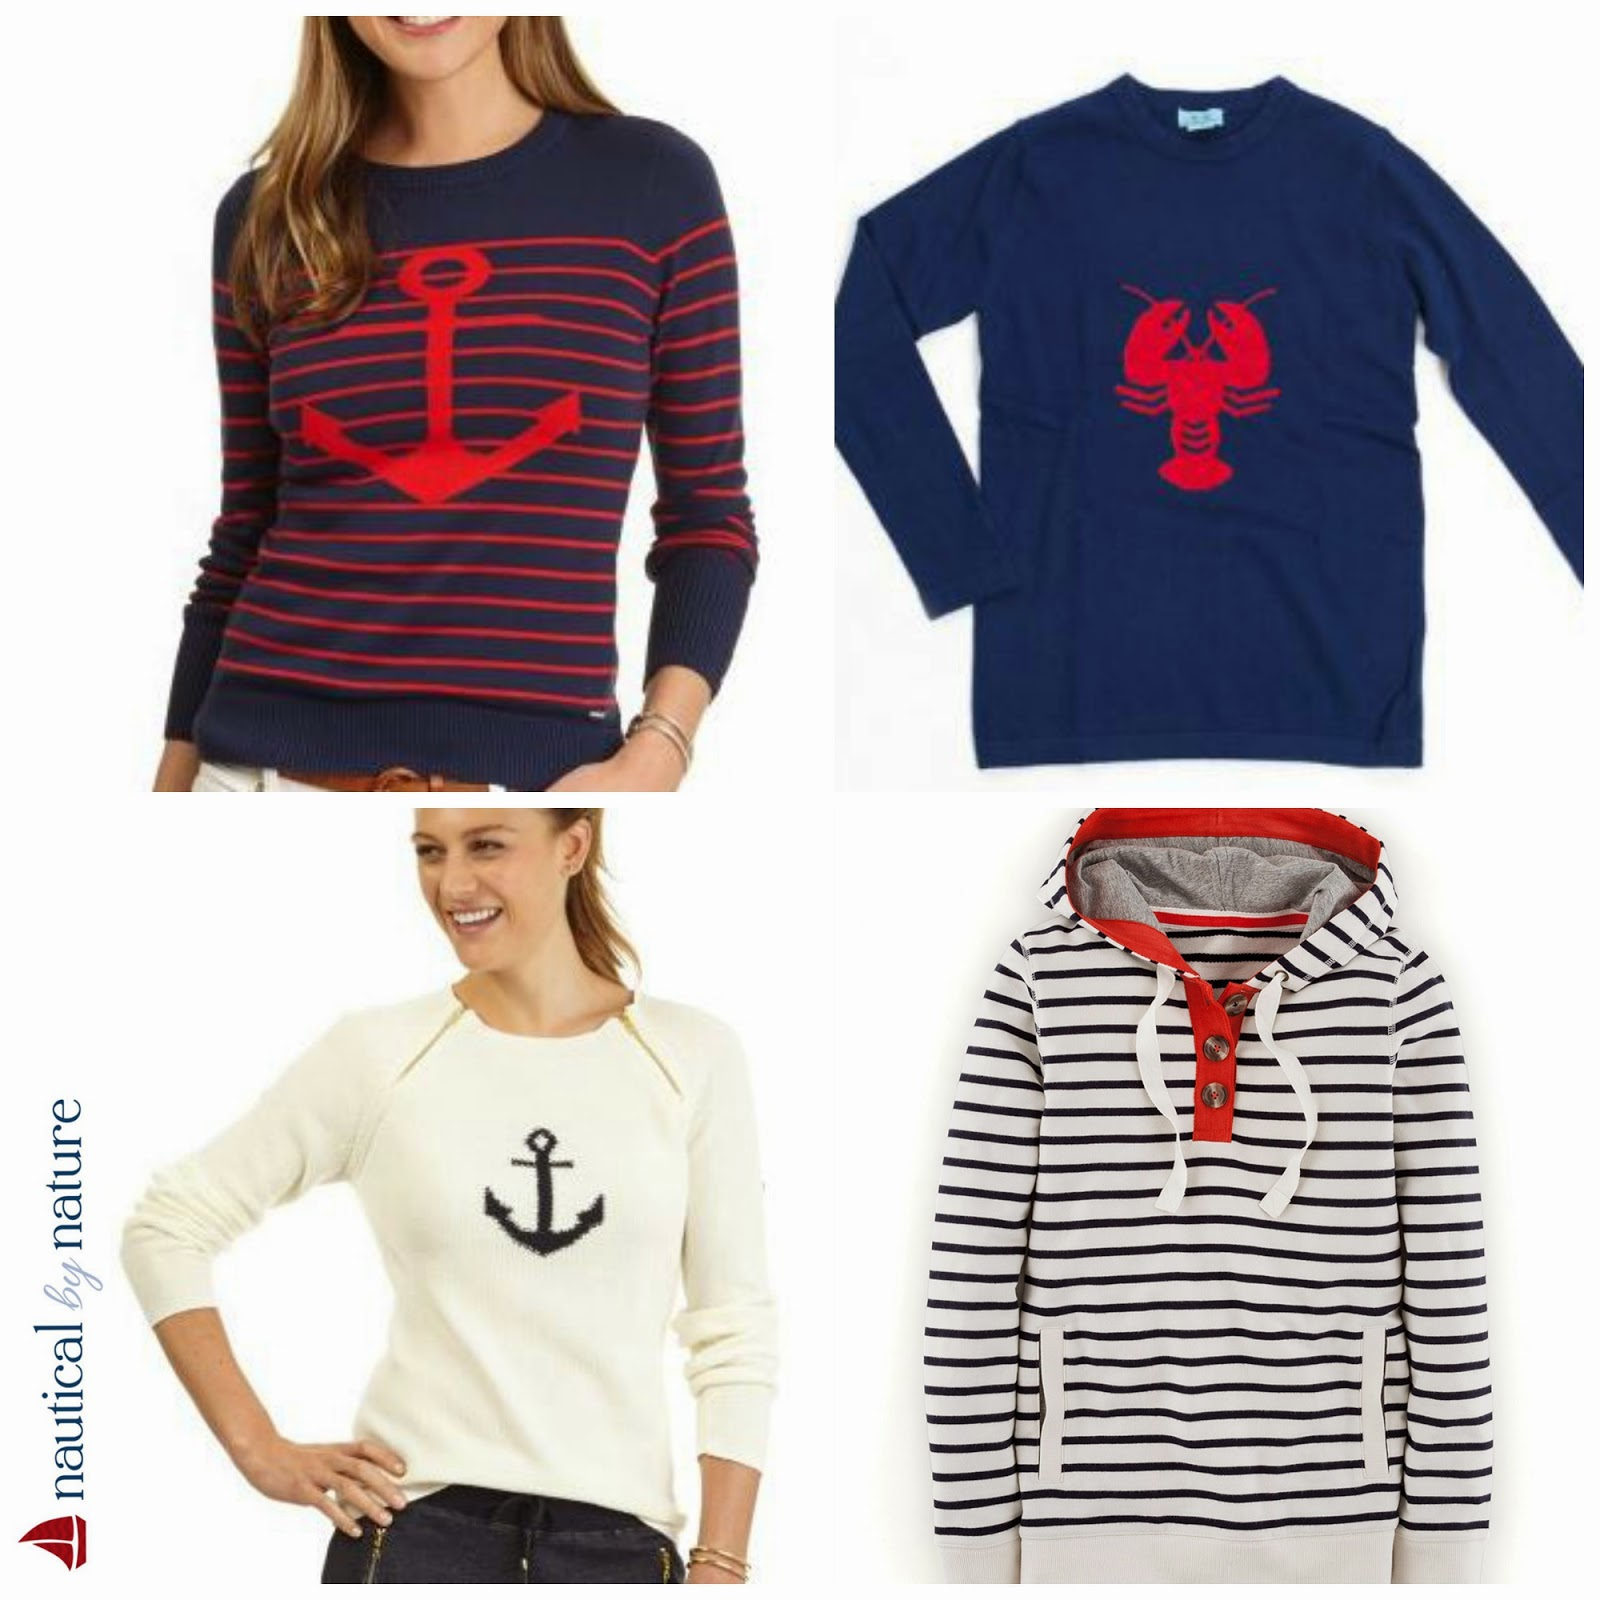 Nautical by Nature | Nautical Essentials for Fall